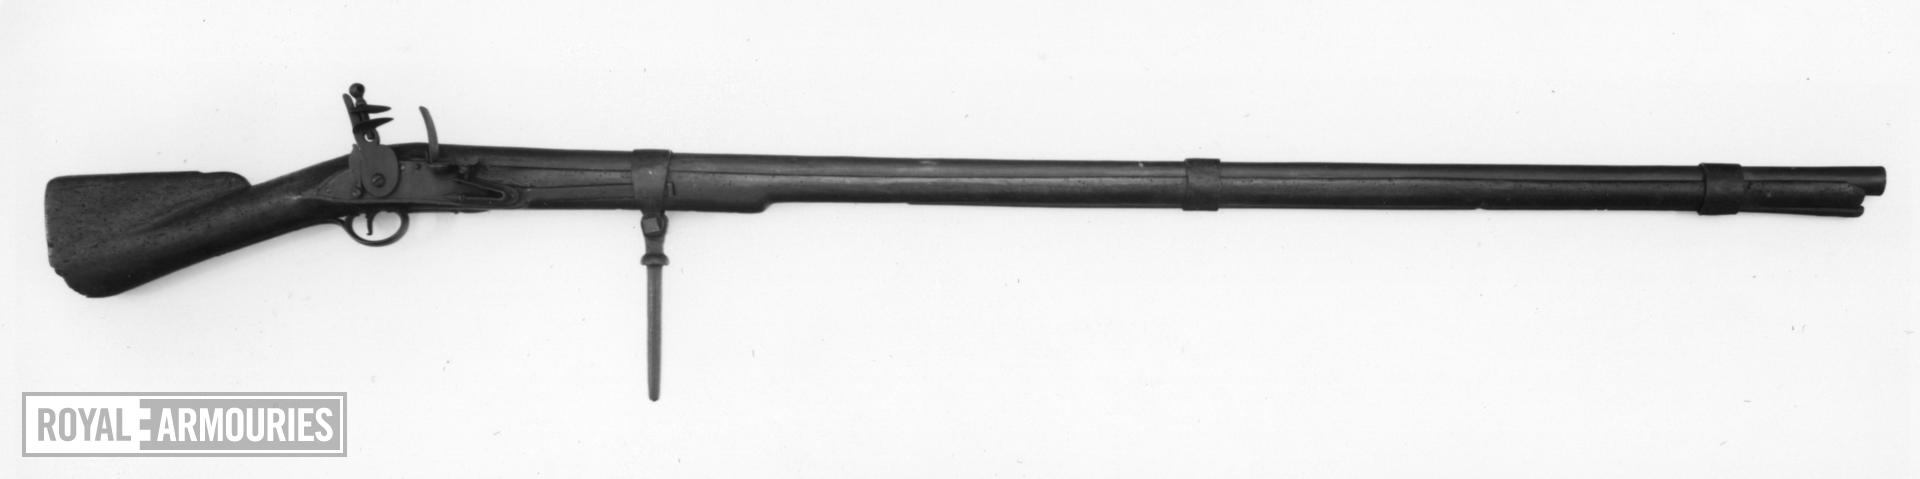 Flintlock breech-loading musket - Punt type For use in a punt or blind